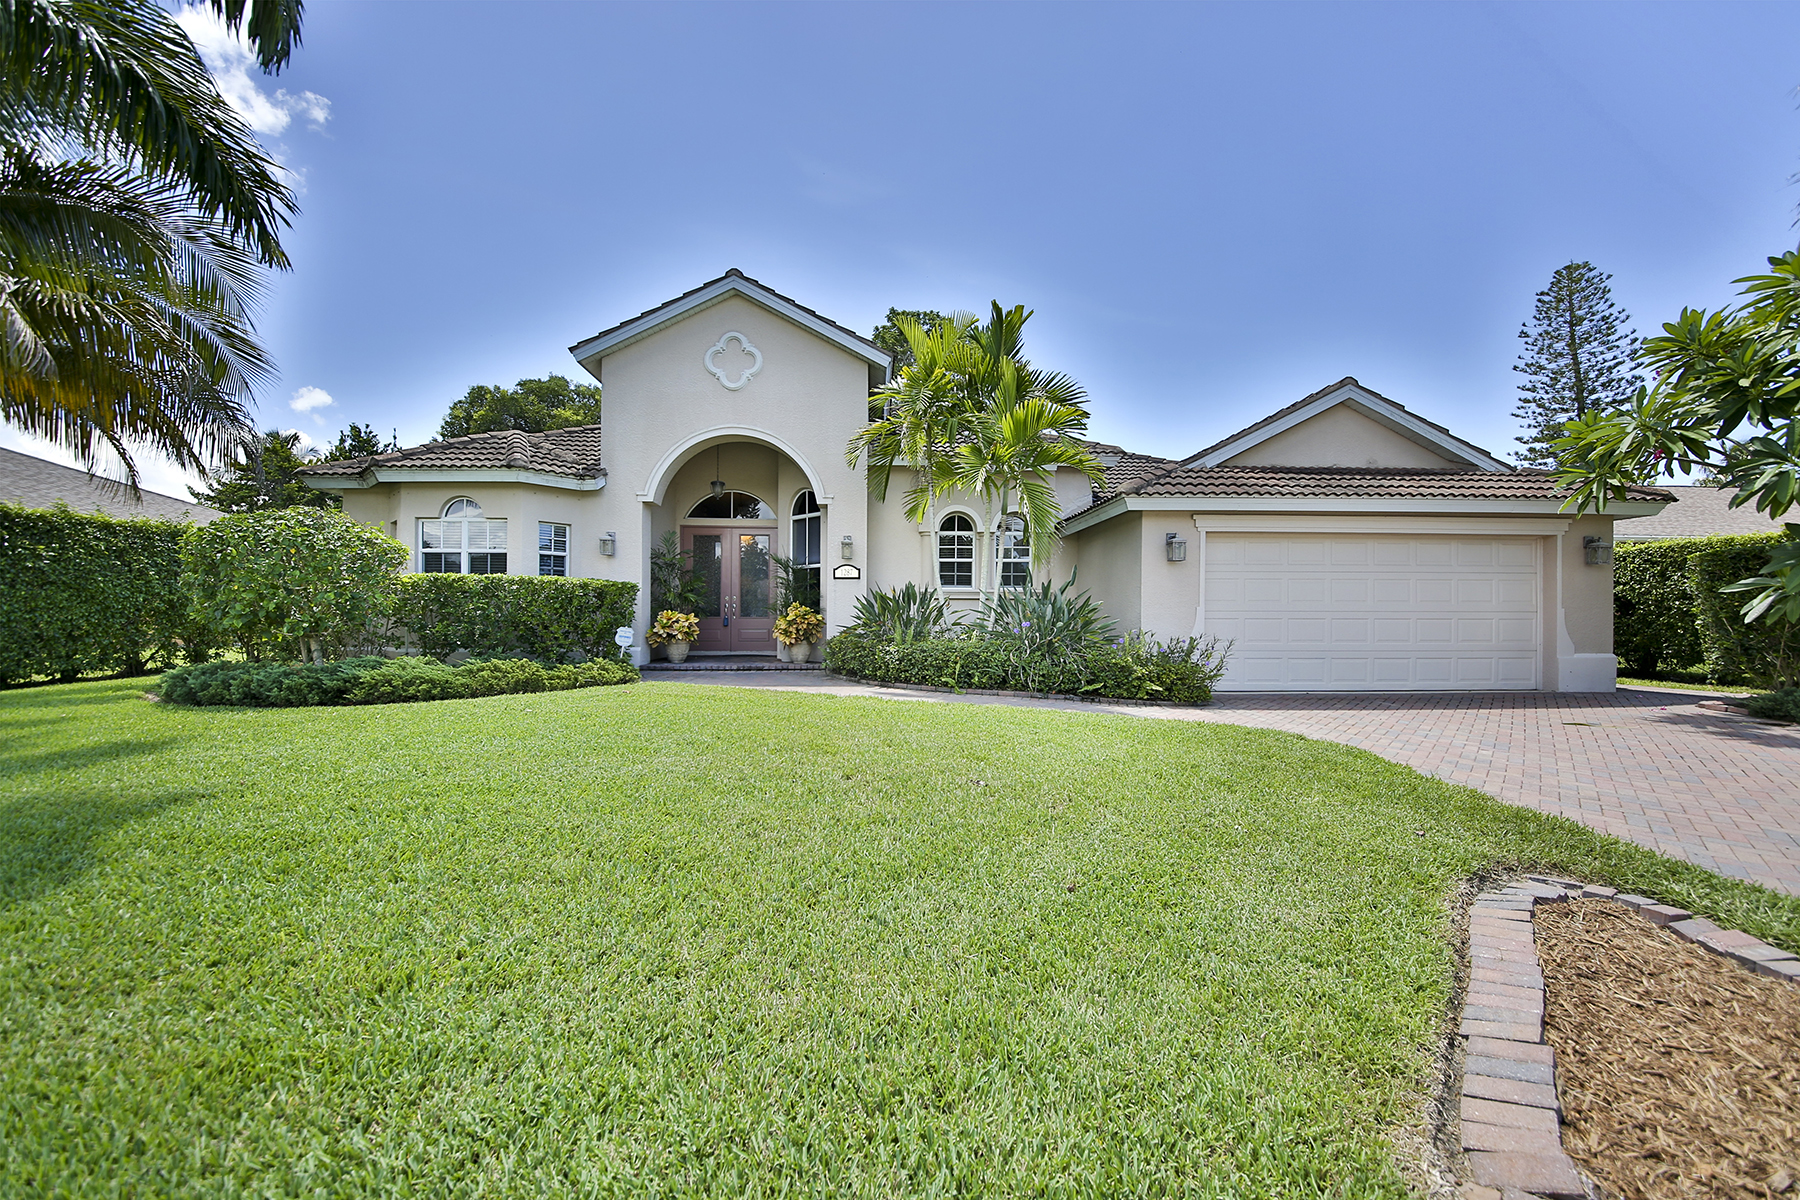 Property For Sale at MARCO ISLAND - 6TH AVENUE